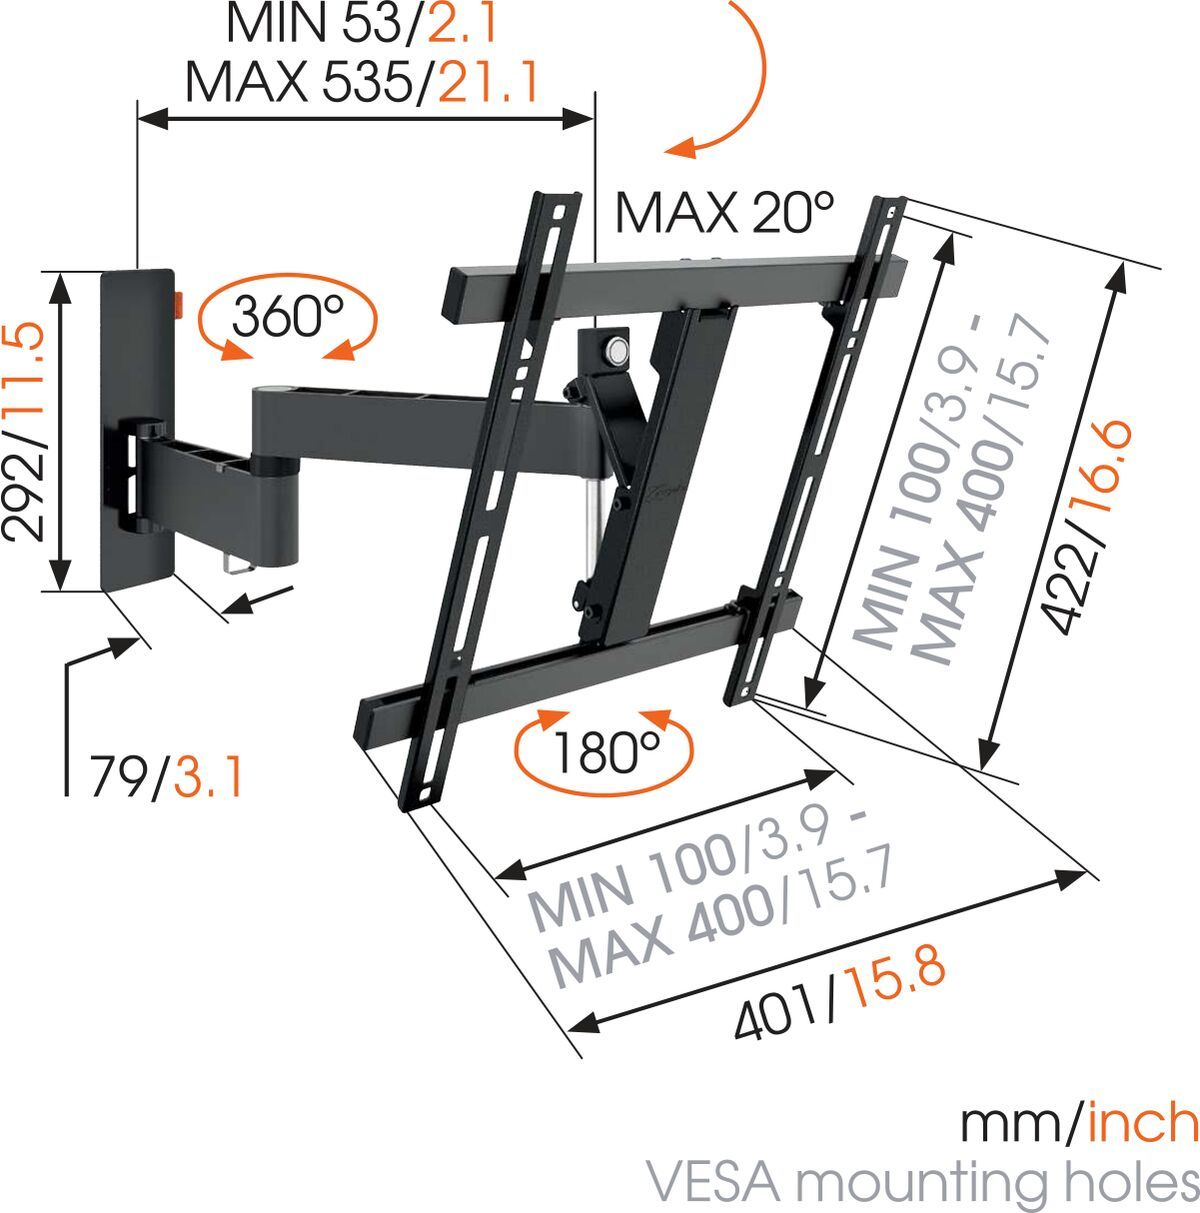 Vogel's WALL 2245 Full-Motion TV Wall Mount (black) - Suitable for 32 up to 55 inch TVs - Up to 180° - Tilt up to 20° - Dimensions